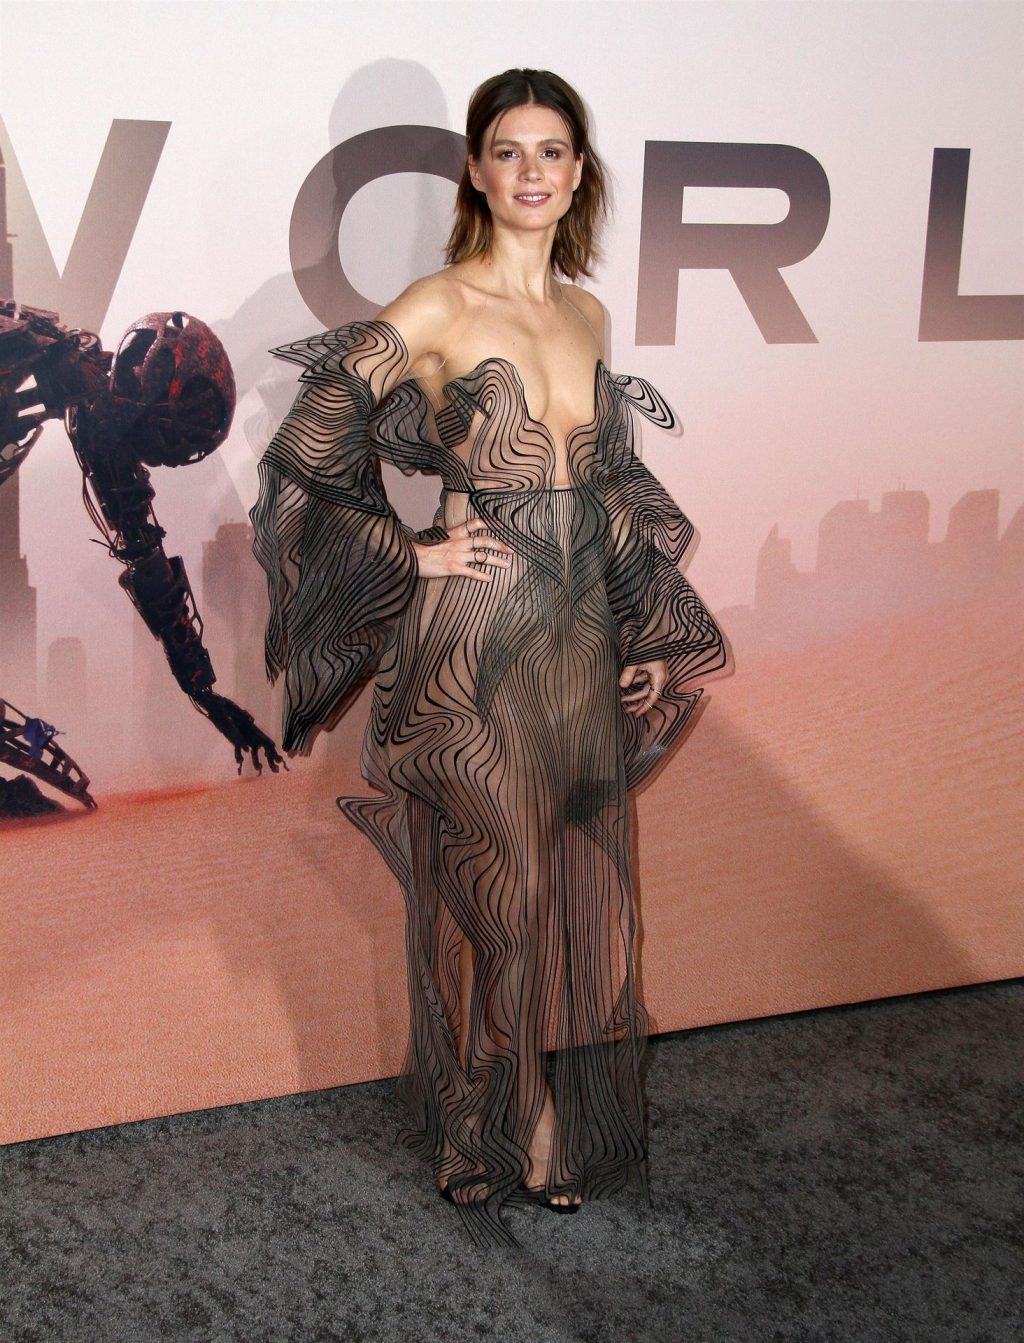 Katja Herbers Flaunts Her Tits at the HBO's Season 3 Premiere of Westworld (17 Photos)